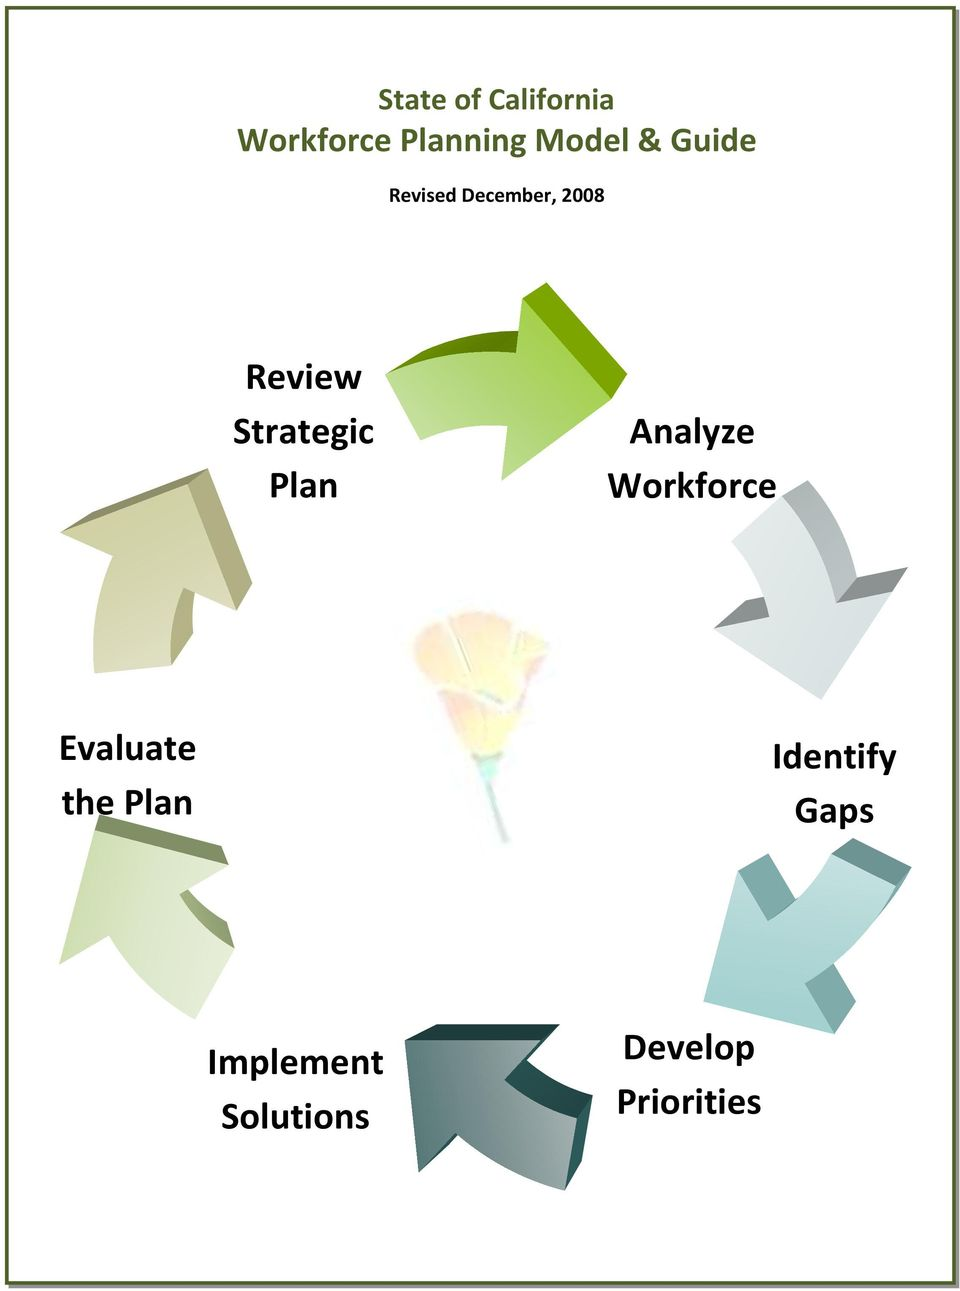 Plan Analyze Workforce Evaluate the Plan